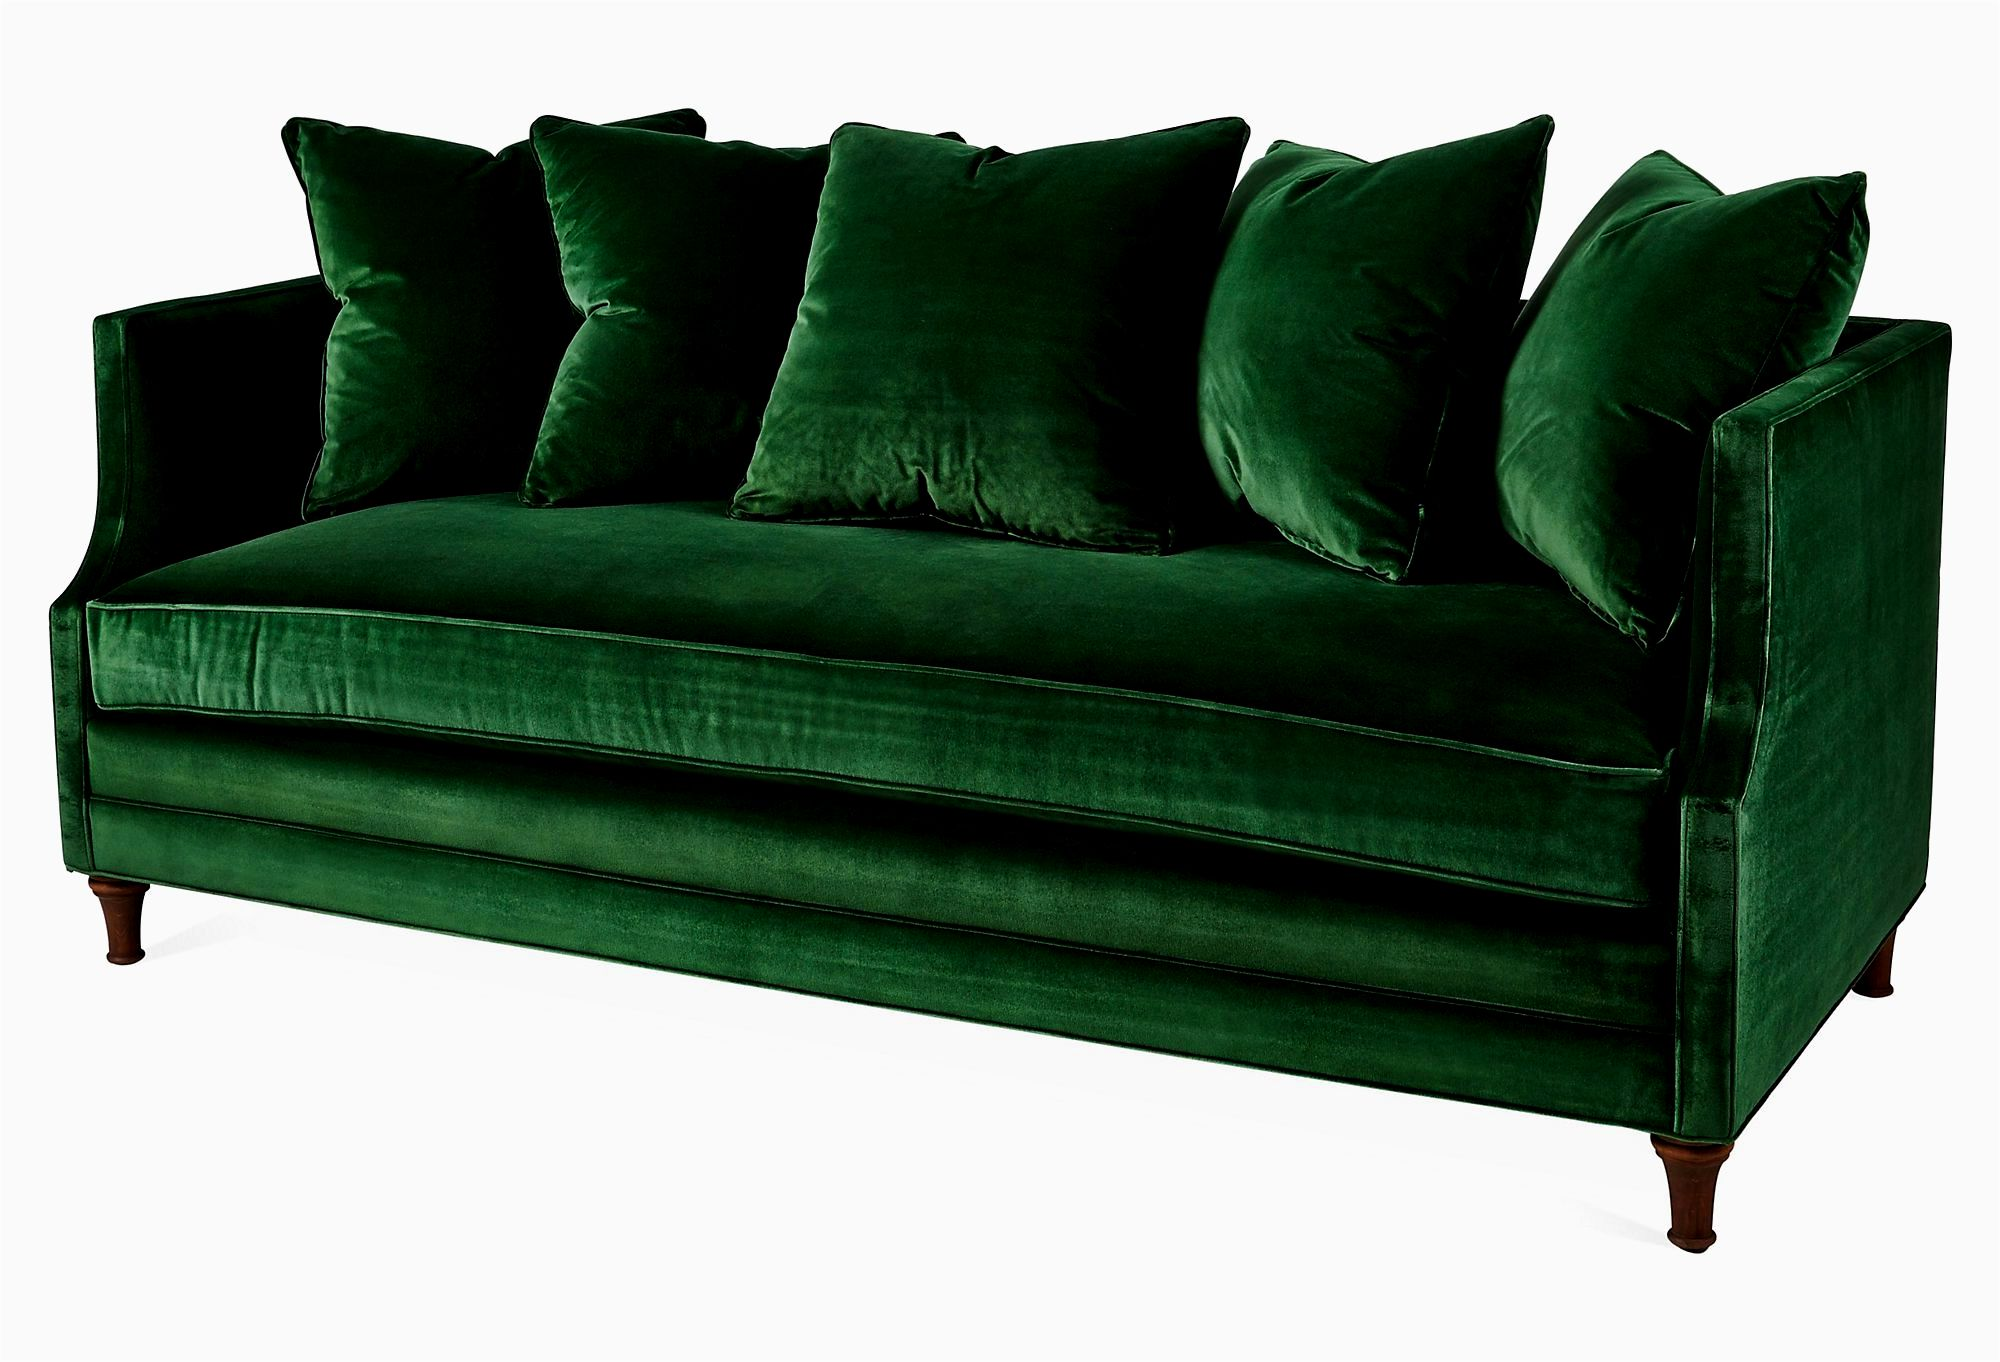 cool chesterfield tufted sofa photograph-Cool Chesterfield Tufted sofa Photo